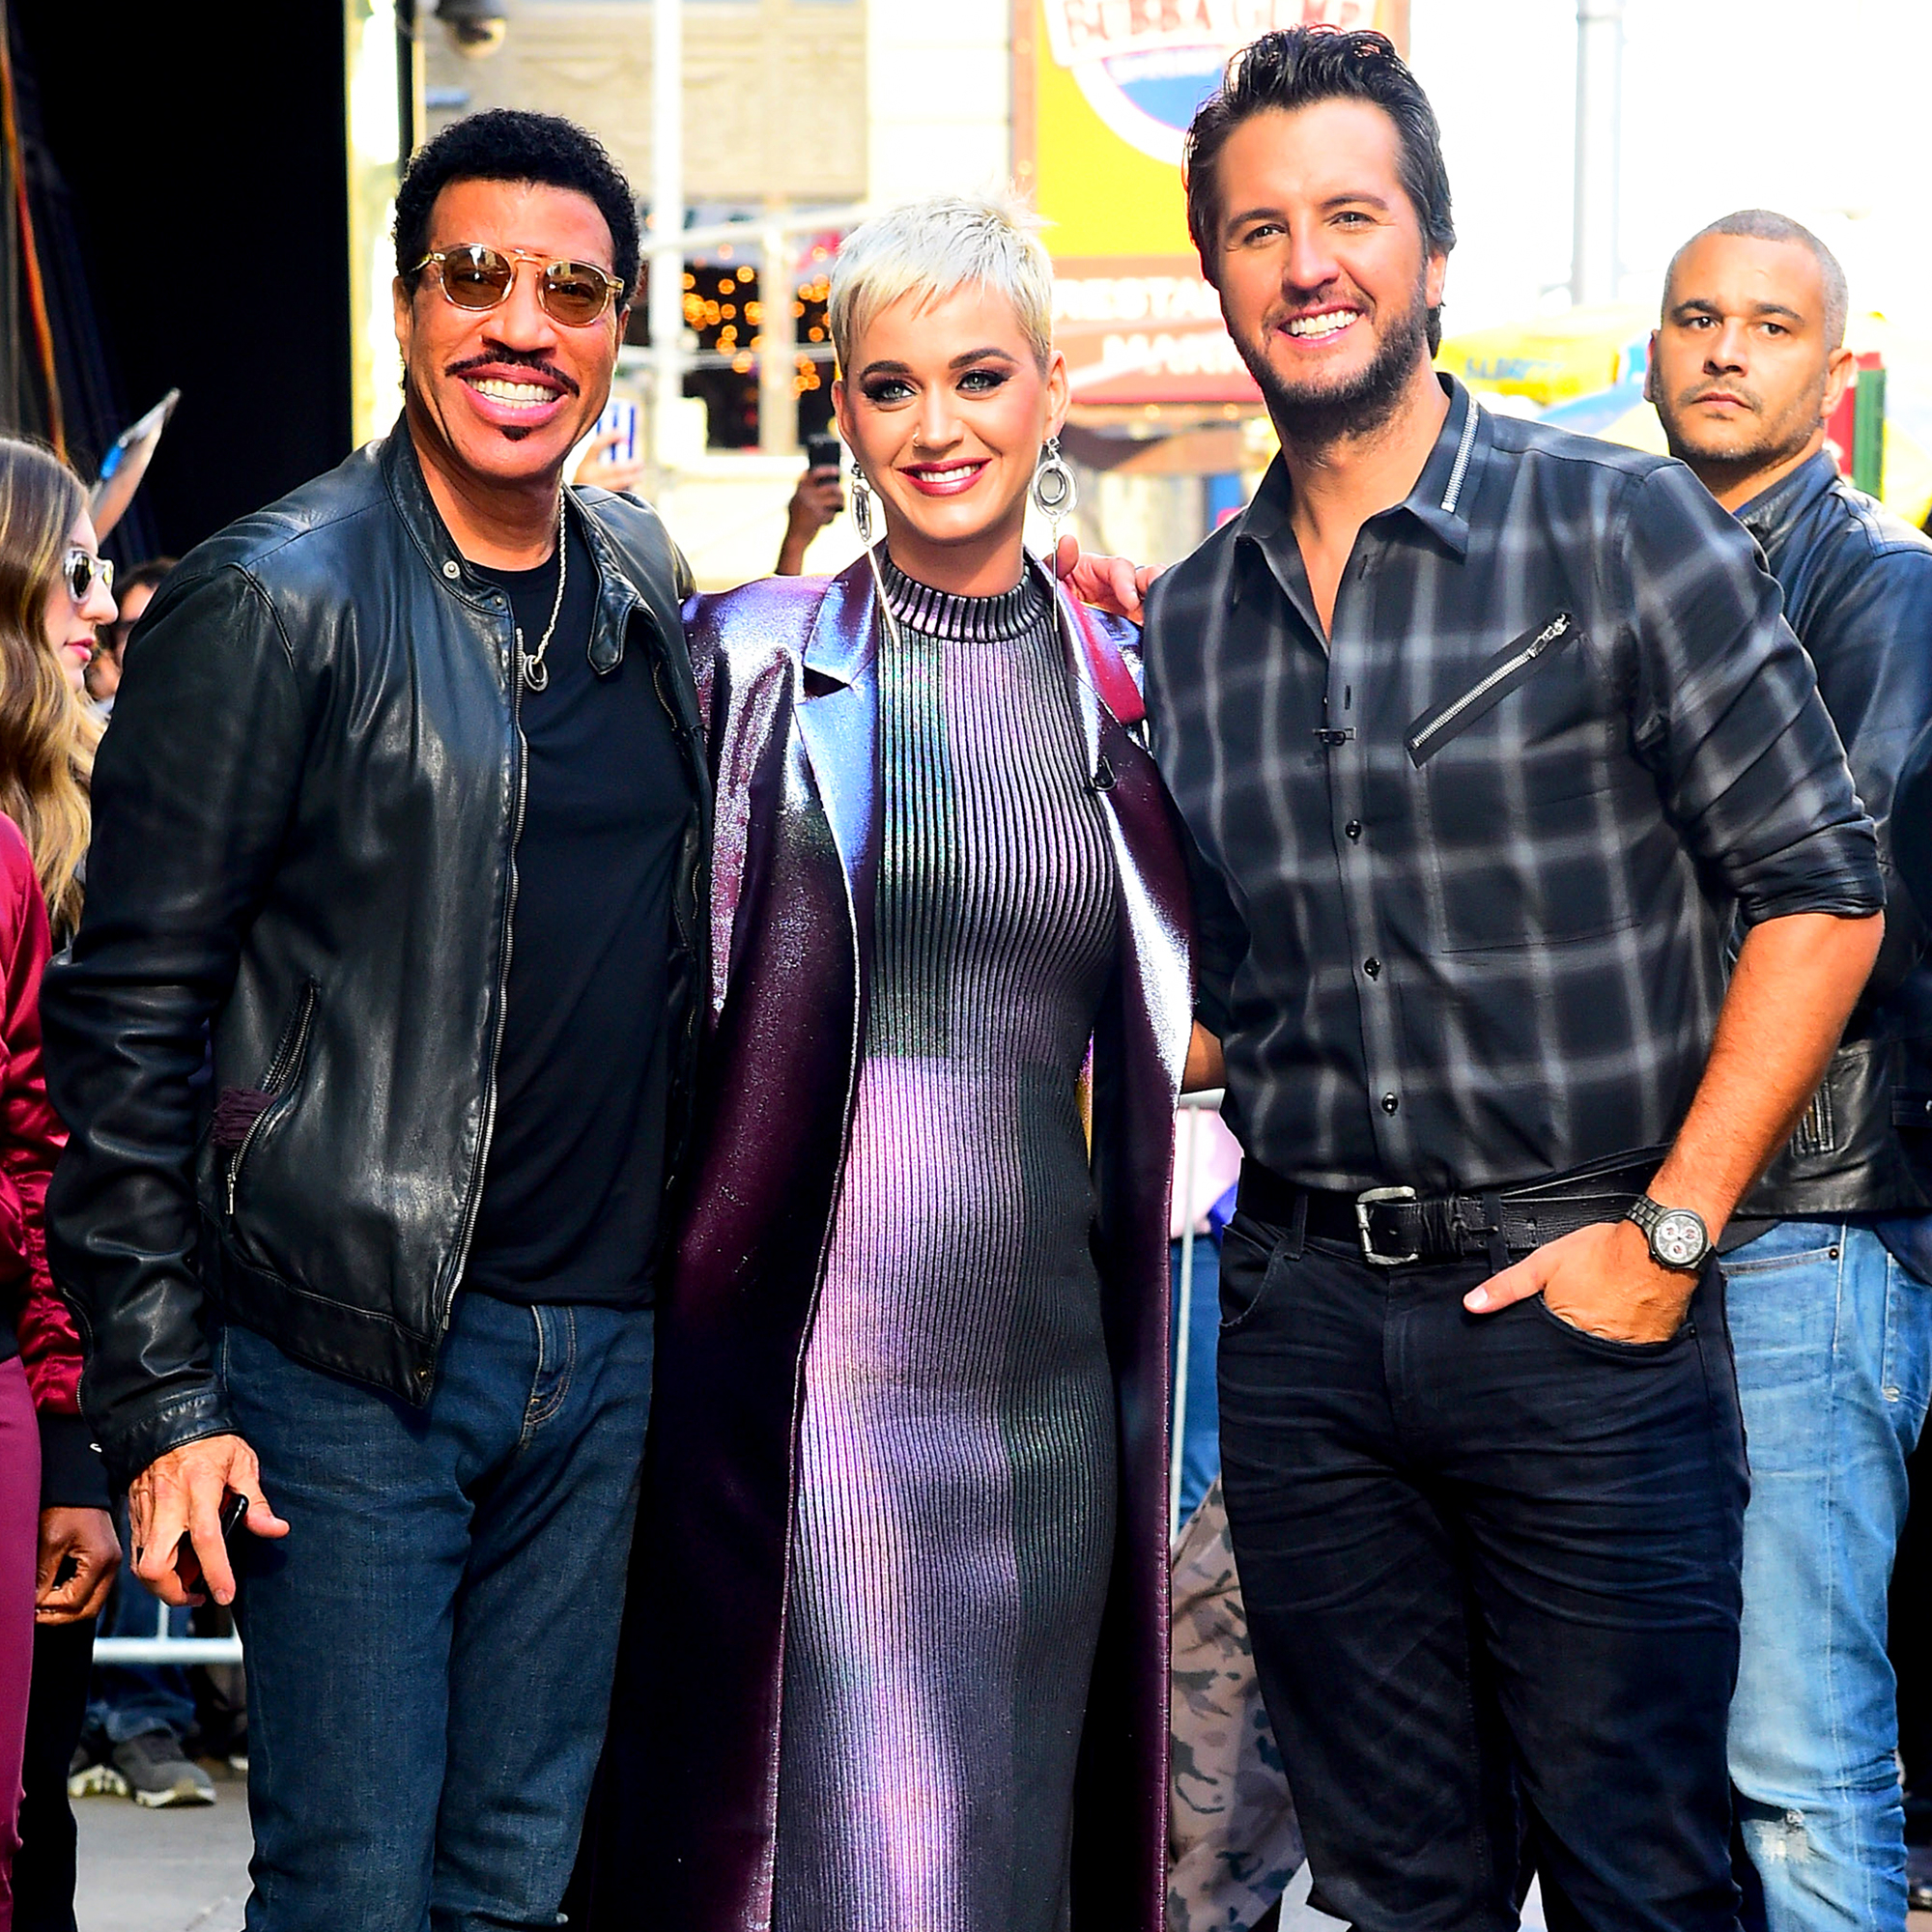 Lionel Richie, Katy Perry and Luke Bryan